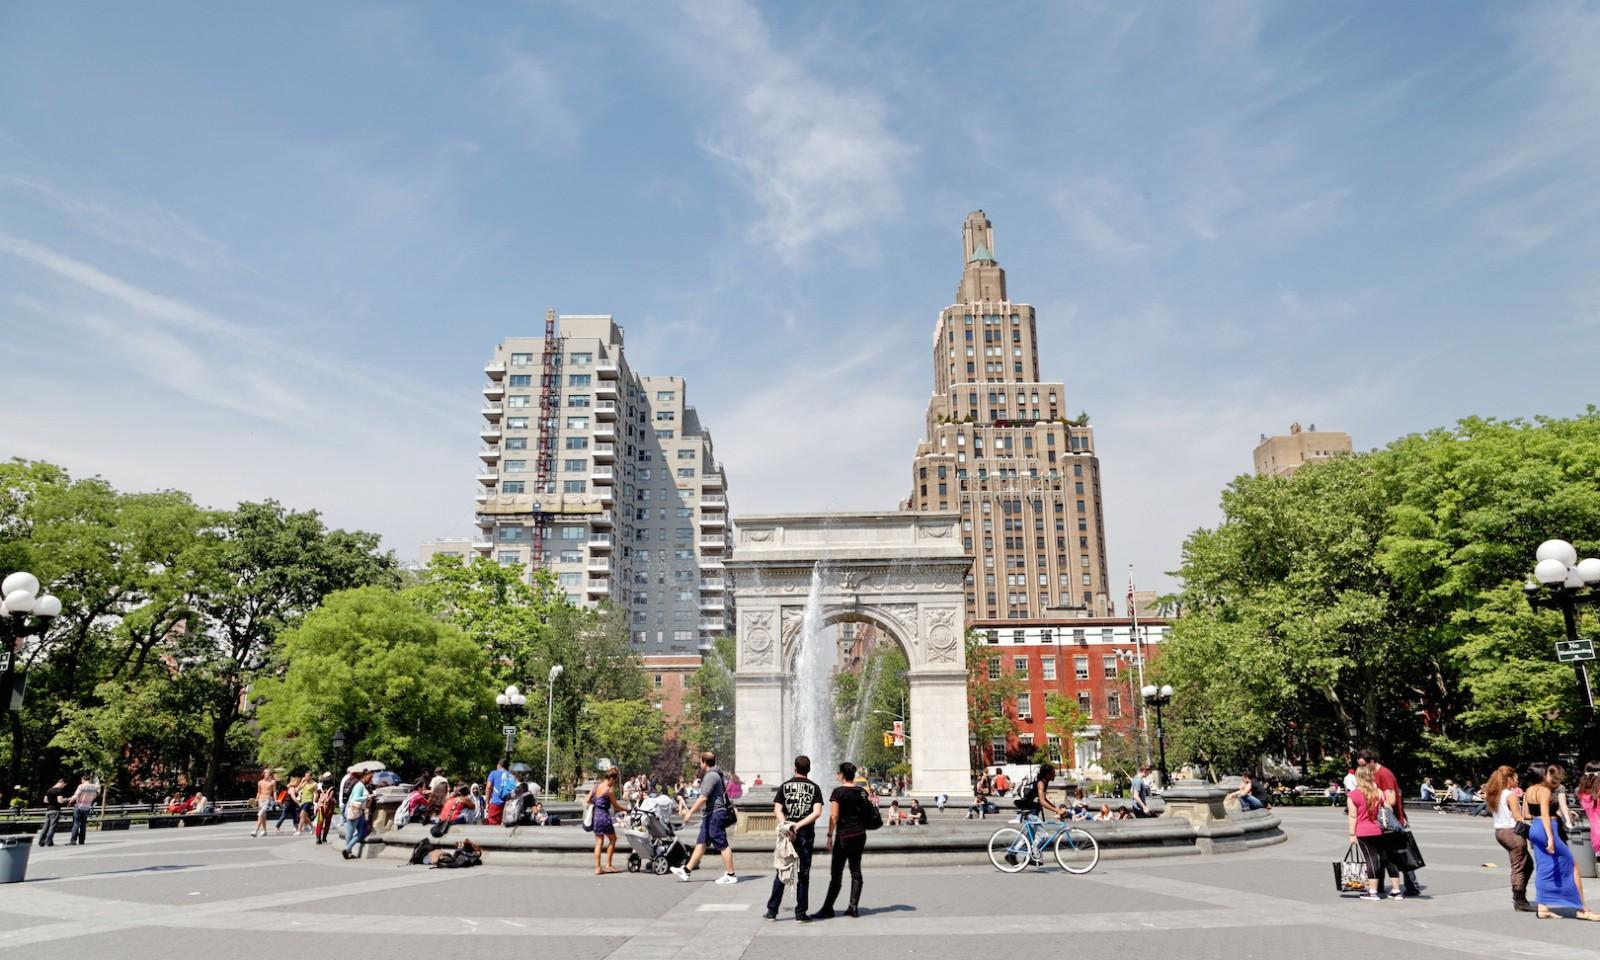 washington_square_park-1600x960